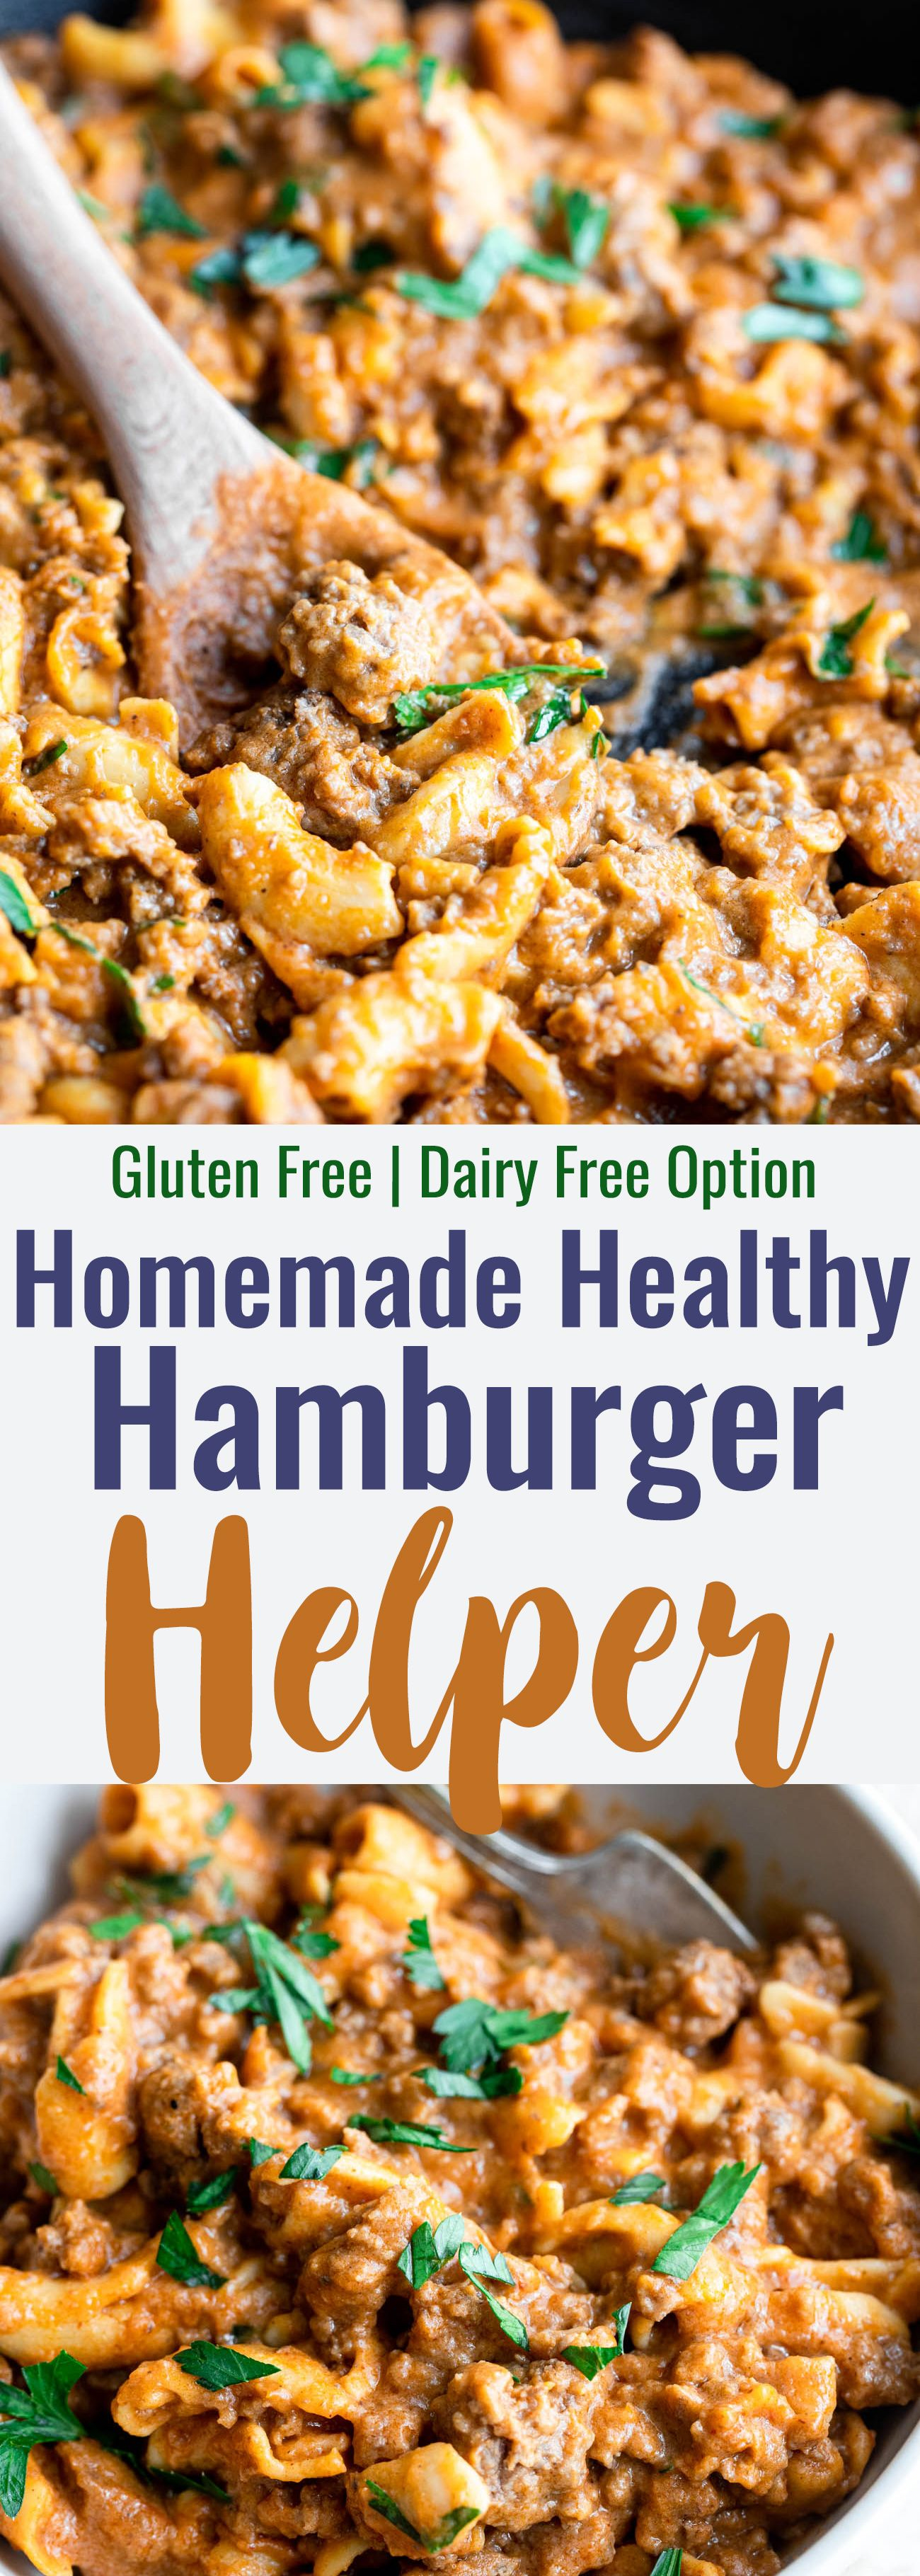 Homemade Healthy Hamburger Helper | Food Faith Fitness